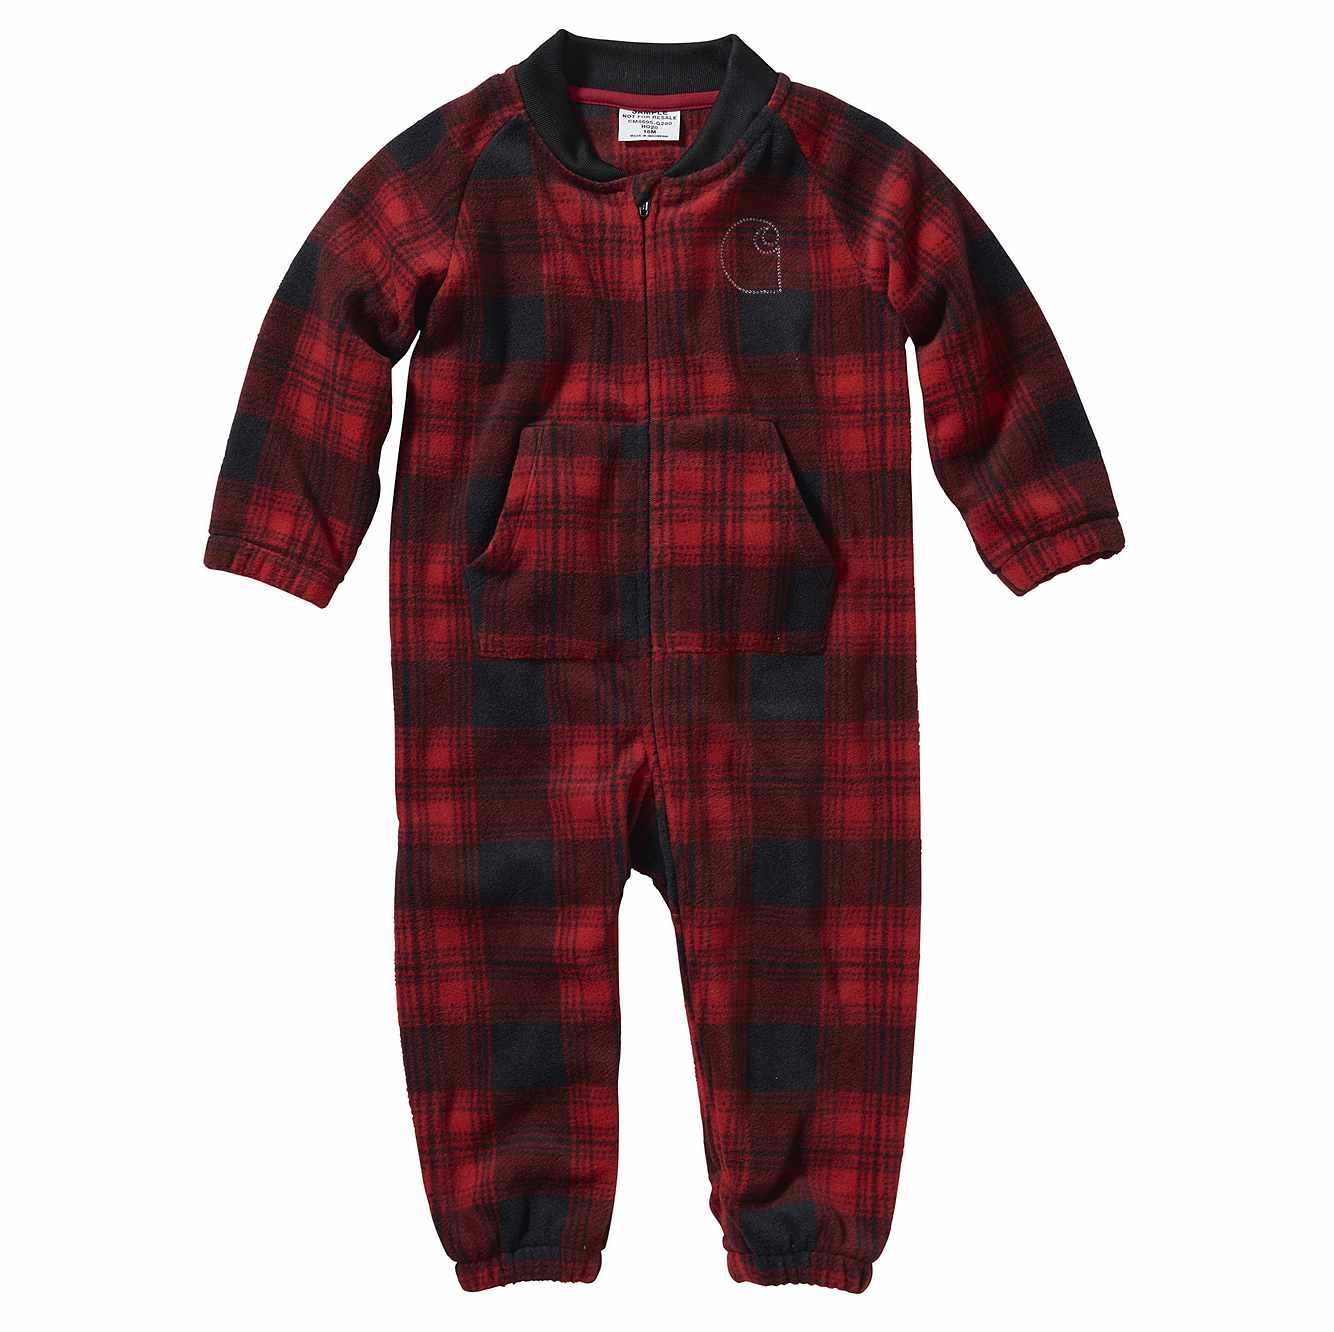 Picture of Long Sleeve Plaid Fleece Coverall in Jalapeno Red